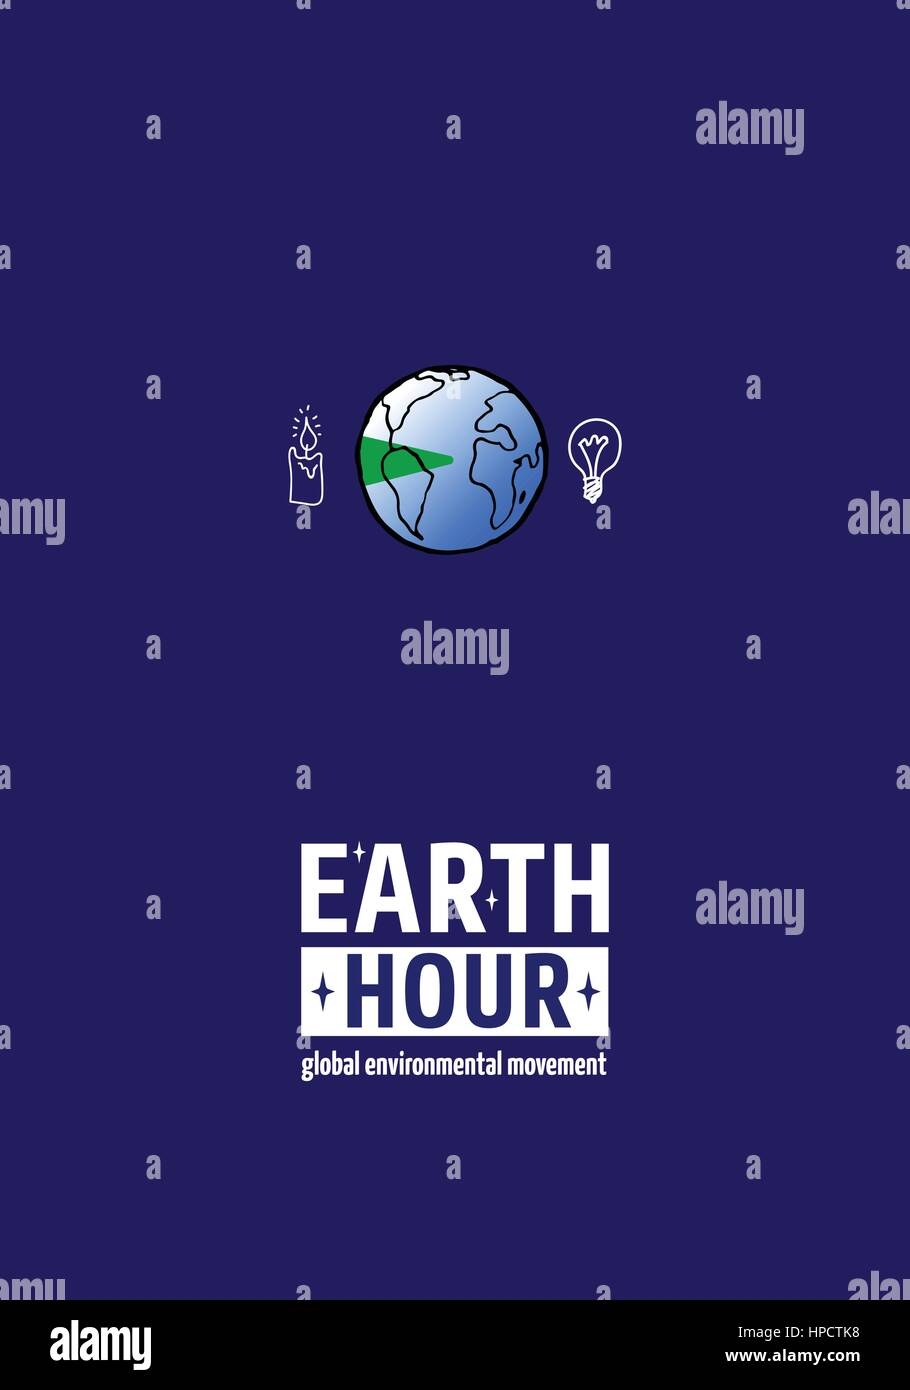 Earth Hour Movement. Vector illustration, template for banner or card - Stock Vector